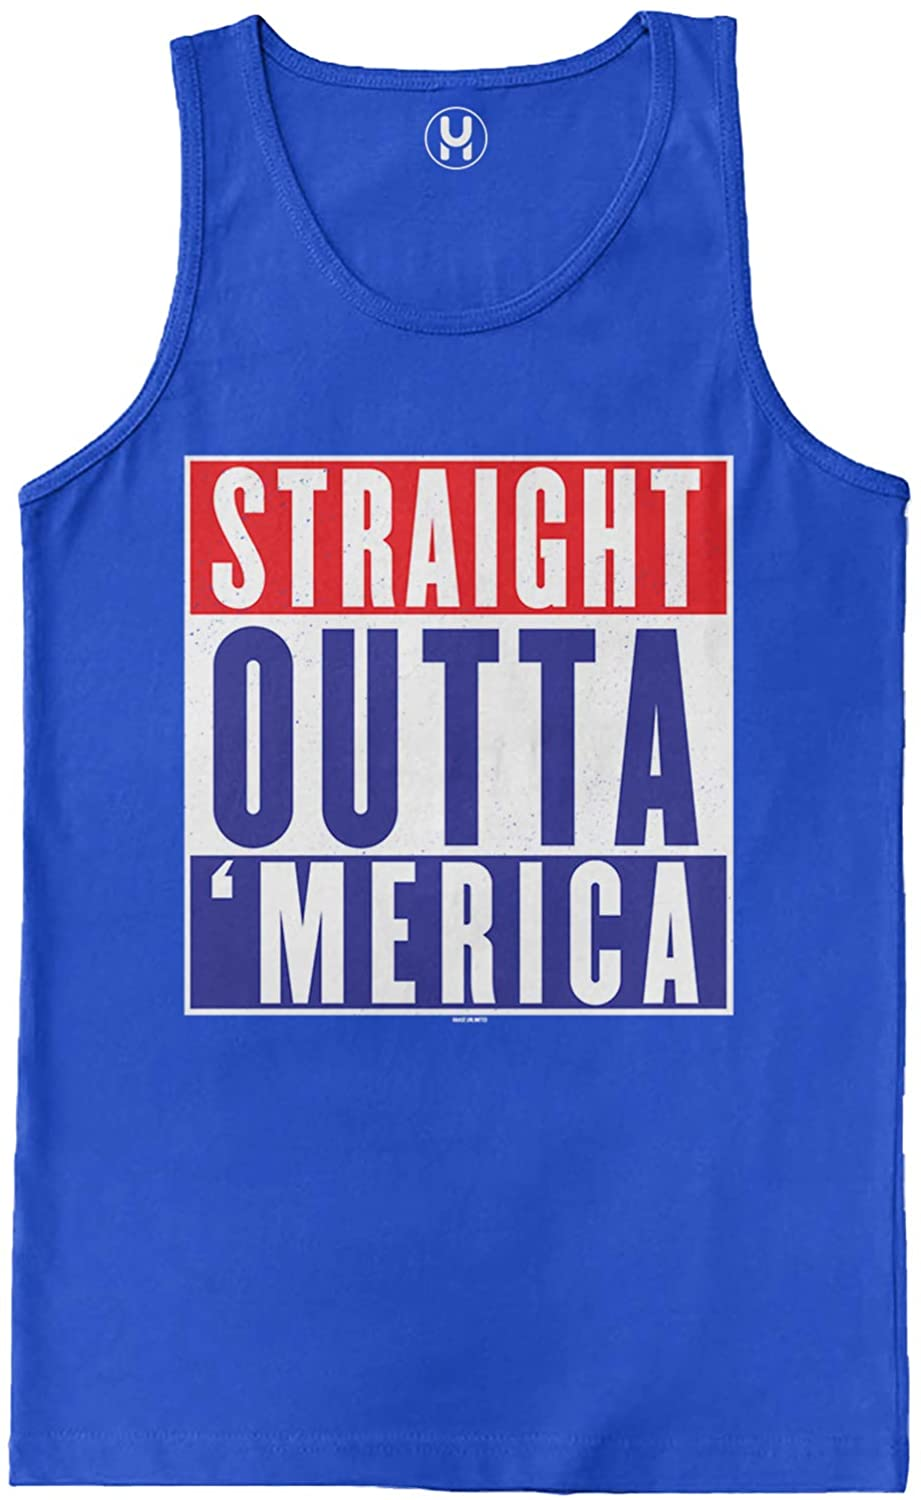 Haase Unlimited Straight Outta - Parody USA Men's Tank Top